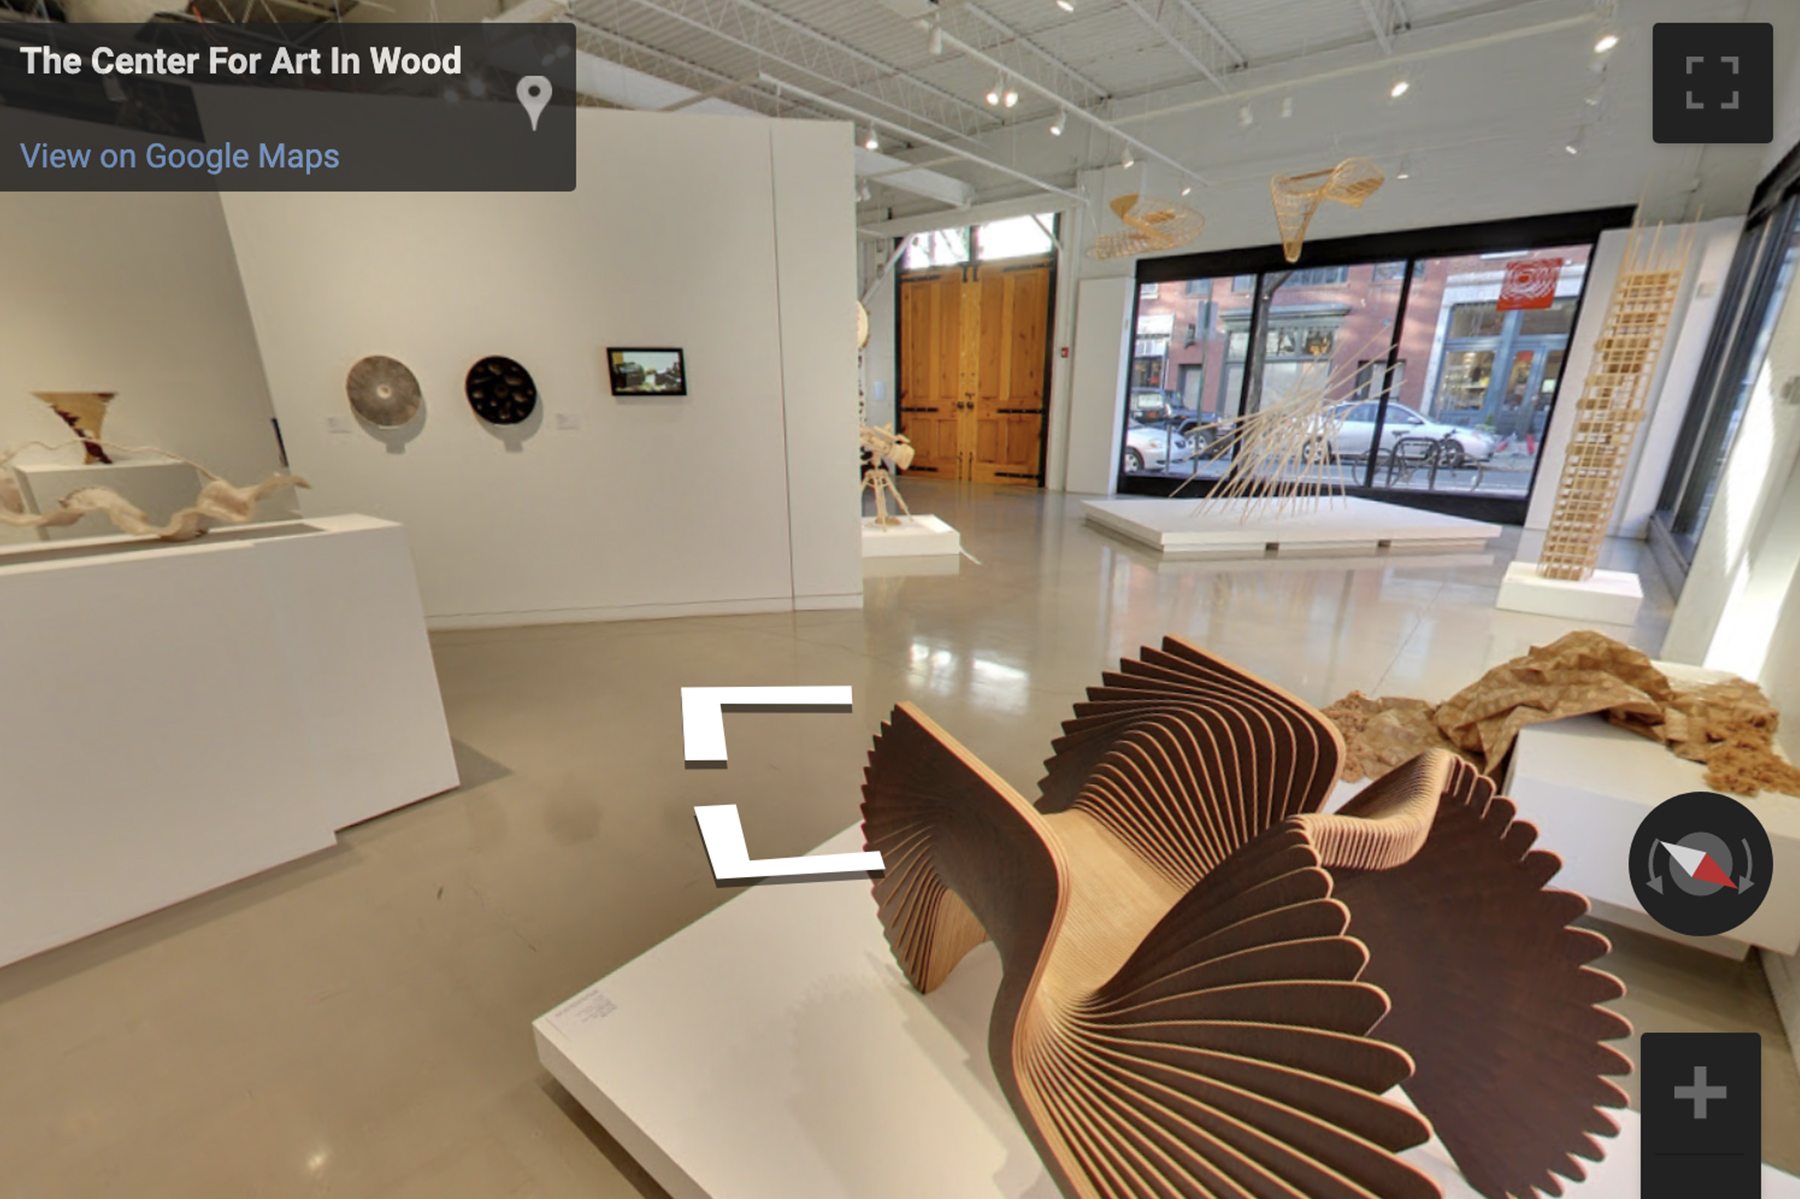 Inside the Center for Art in Wood museum - wood pieces in the gallery